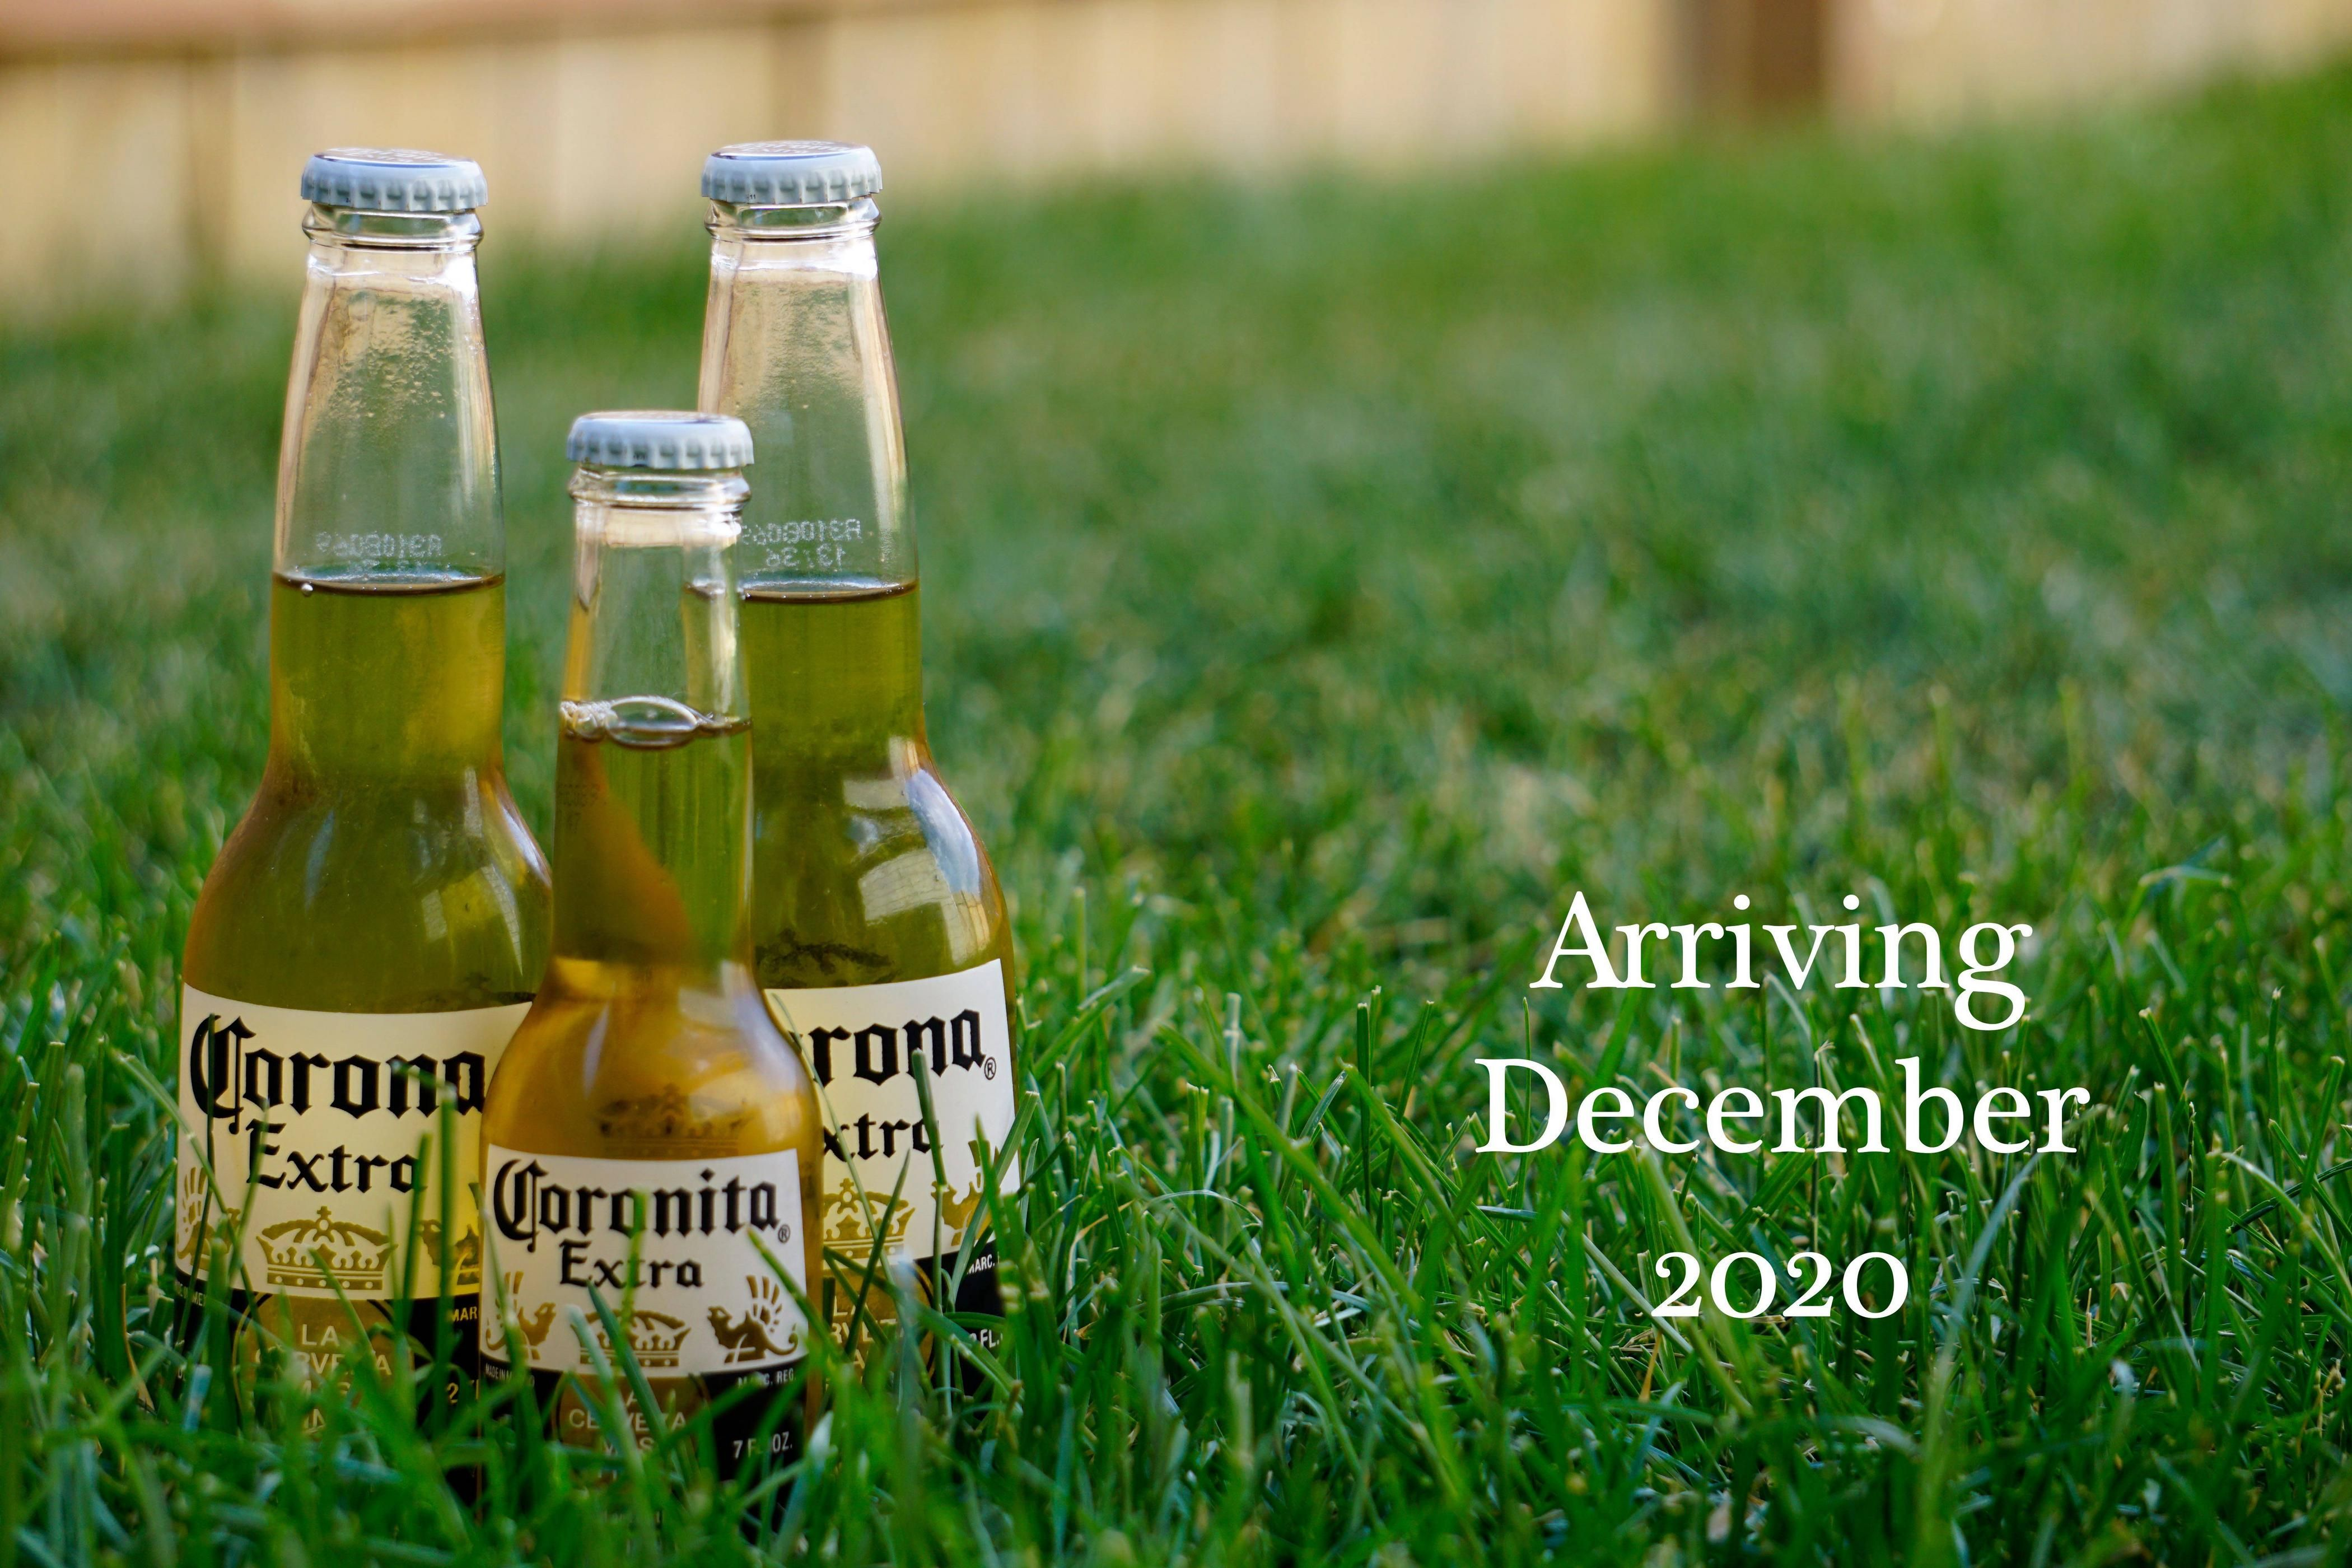 My wife and I found out we will be having a Coronavirus baby. This is how we announced to close friends.